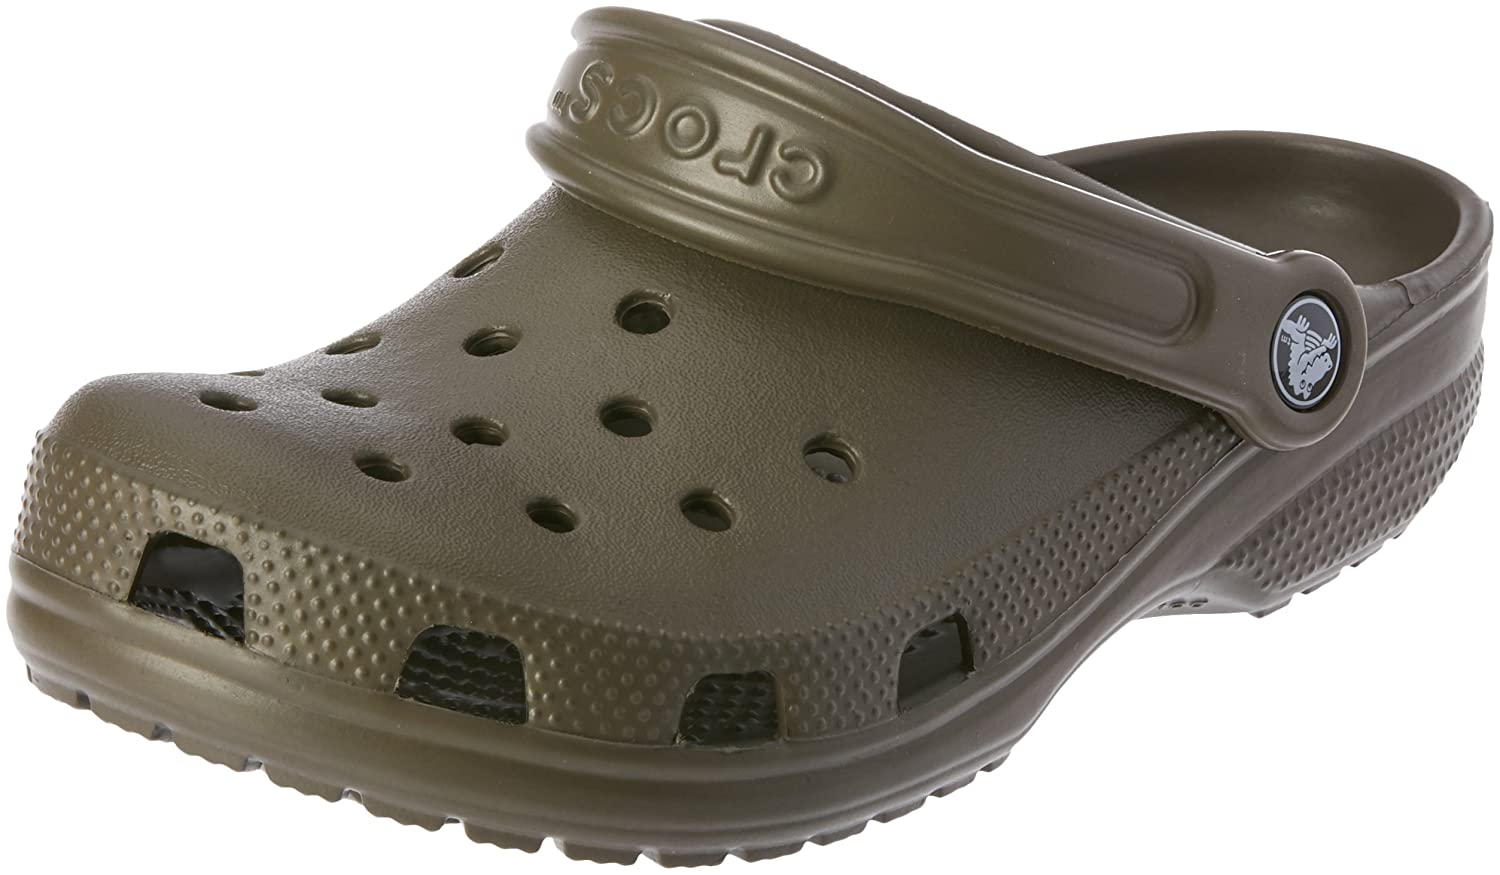 Crocs Classic Clog B07DND8T7C 7 D(M) US Men's/9 B(M) US Women's|Chocolate